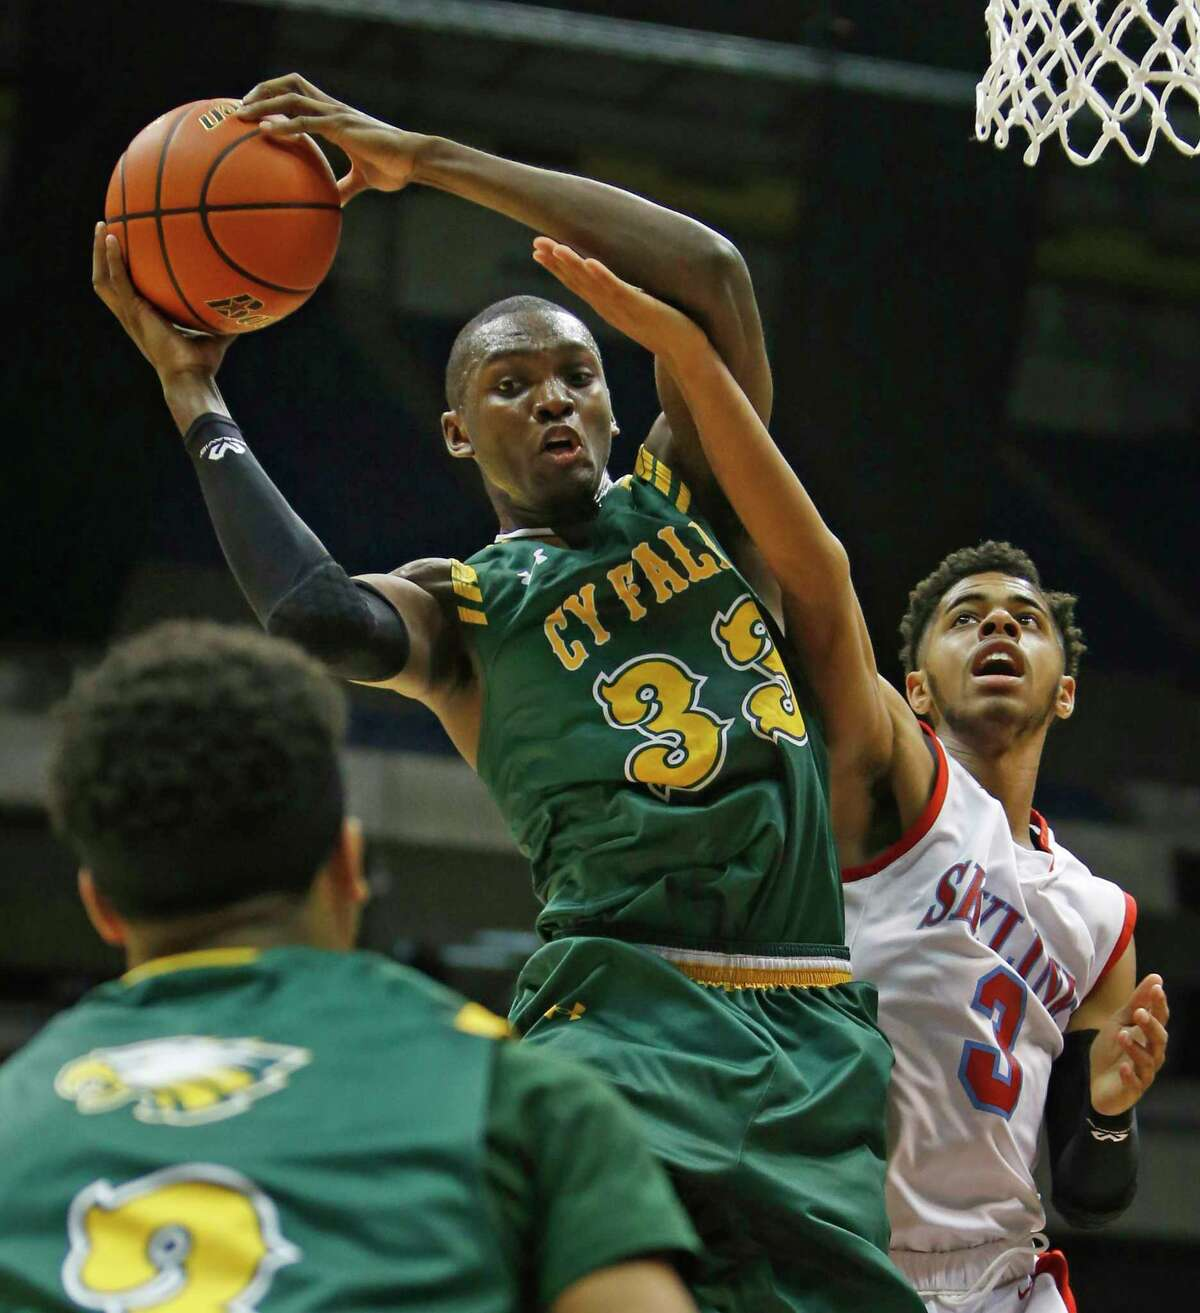 Deshang Weaver of Cypress Falls grabs a rebound next to Dallas Skyline's Jase Townsend during the Class 6A boys basketball semifinal Friday night.